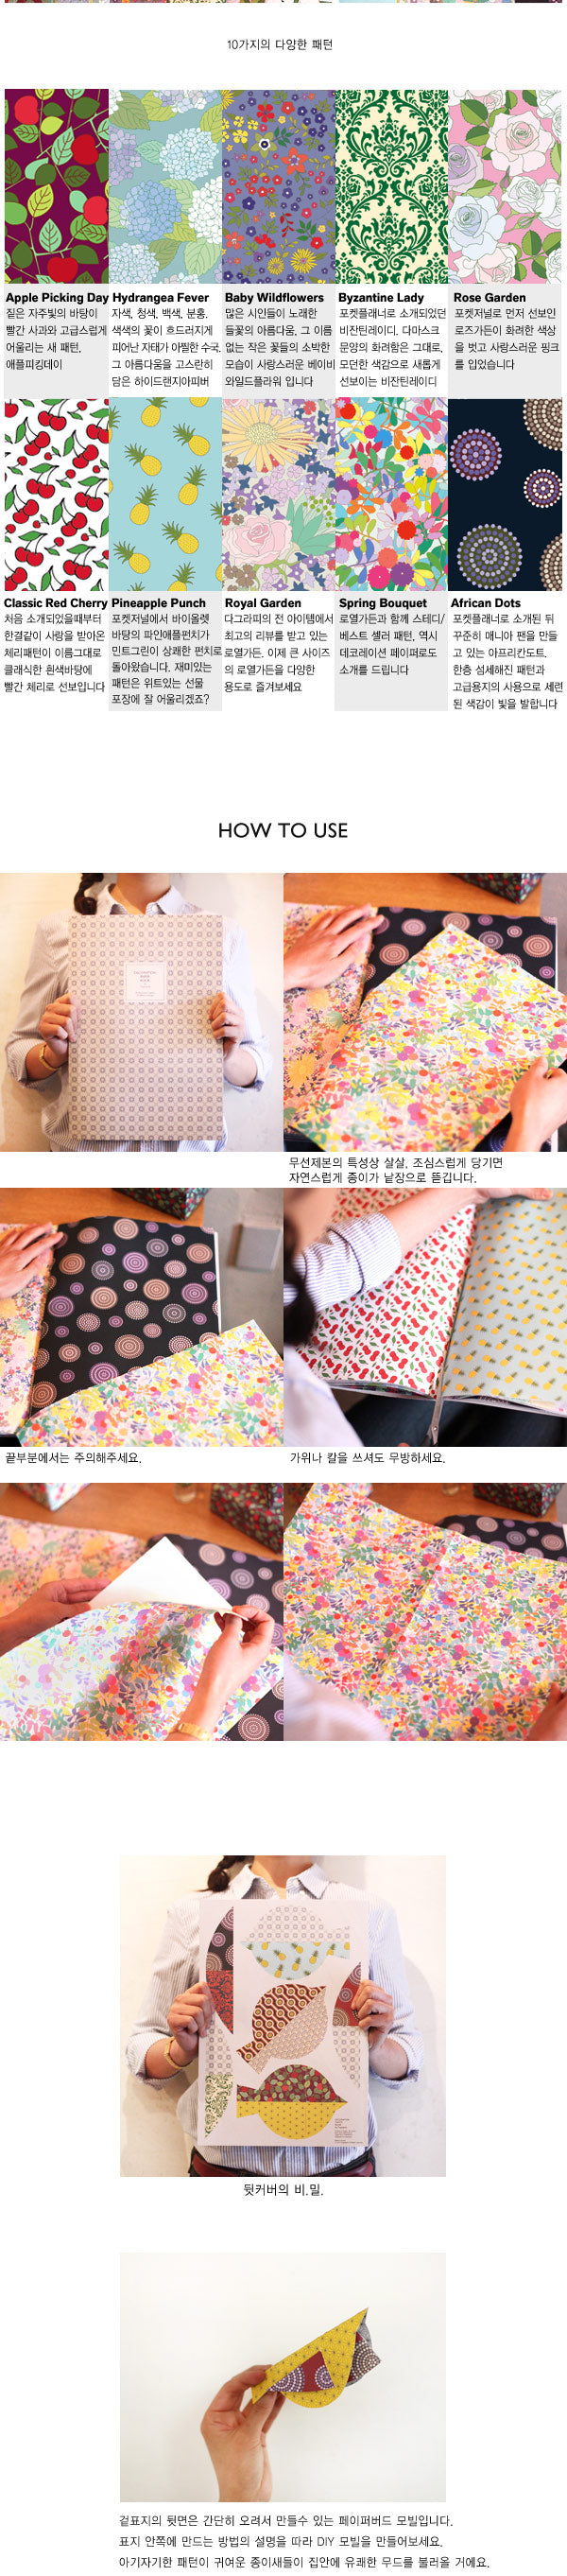 Dagraphy Korean Stationery | Decoration Patterned Paper DIY Craft Book